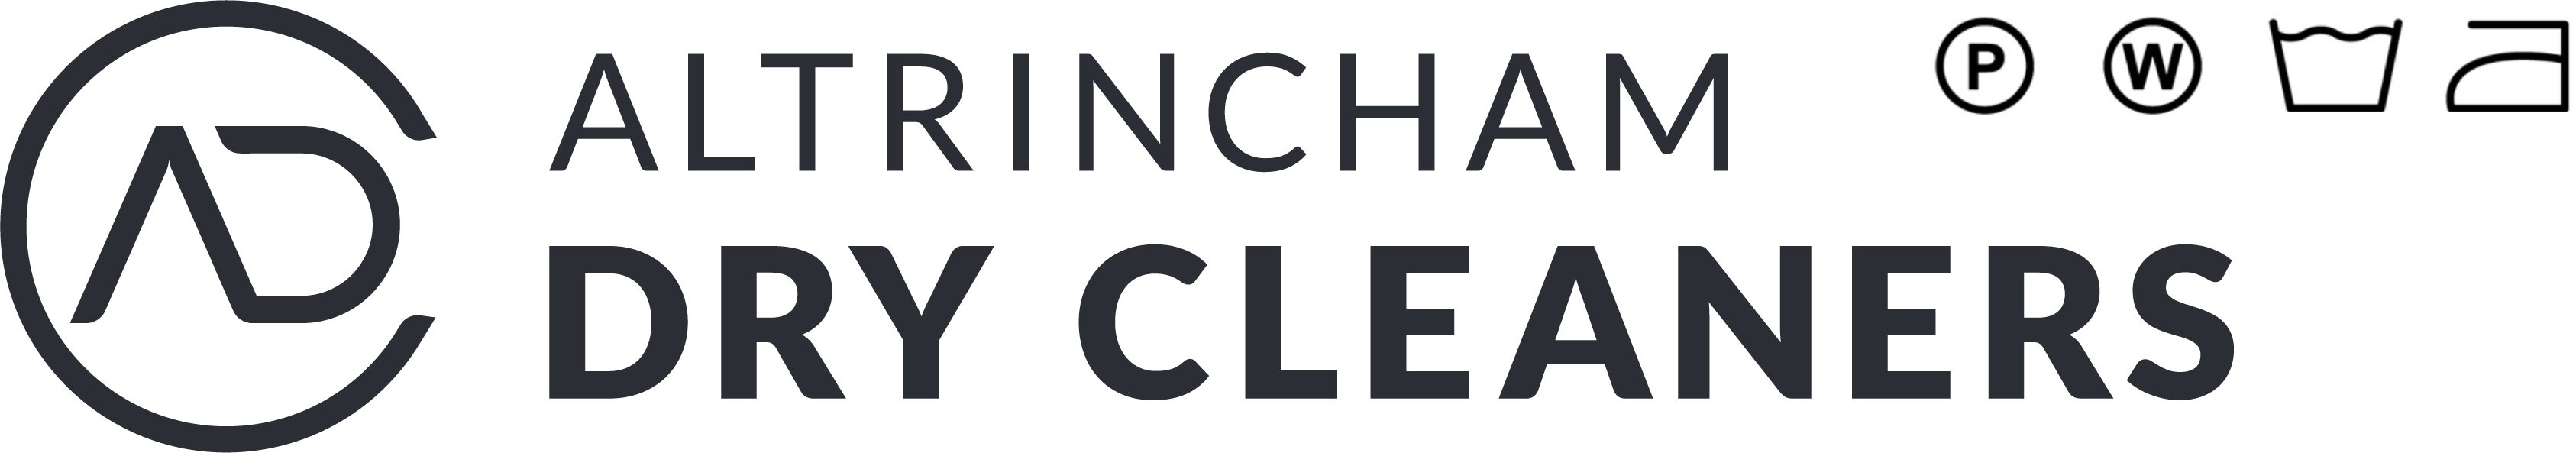 Altrincham Dry Cleaners | Ironing | Laundry | Carpet Cleaning